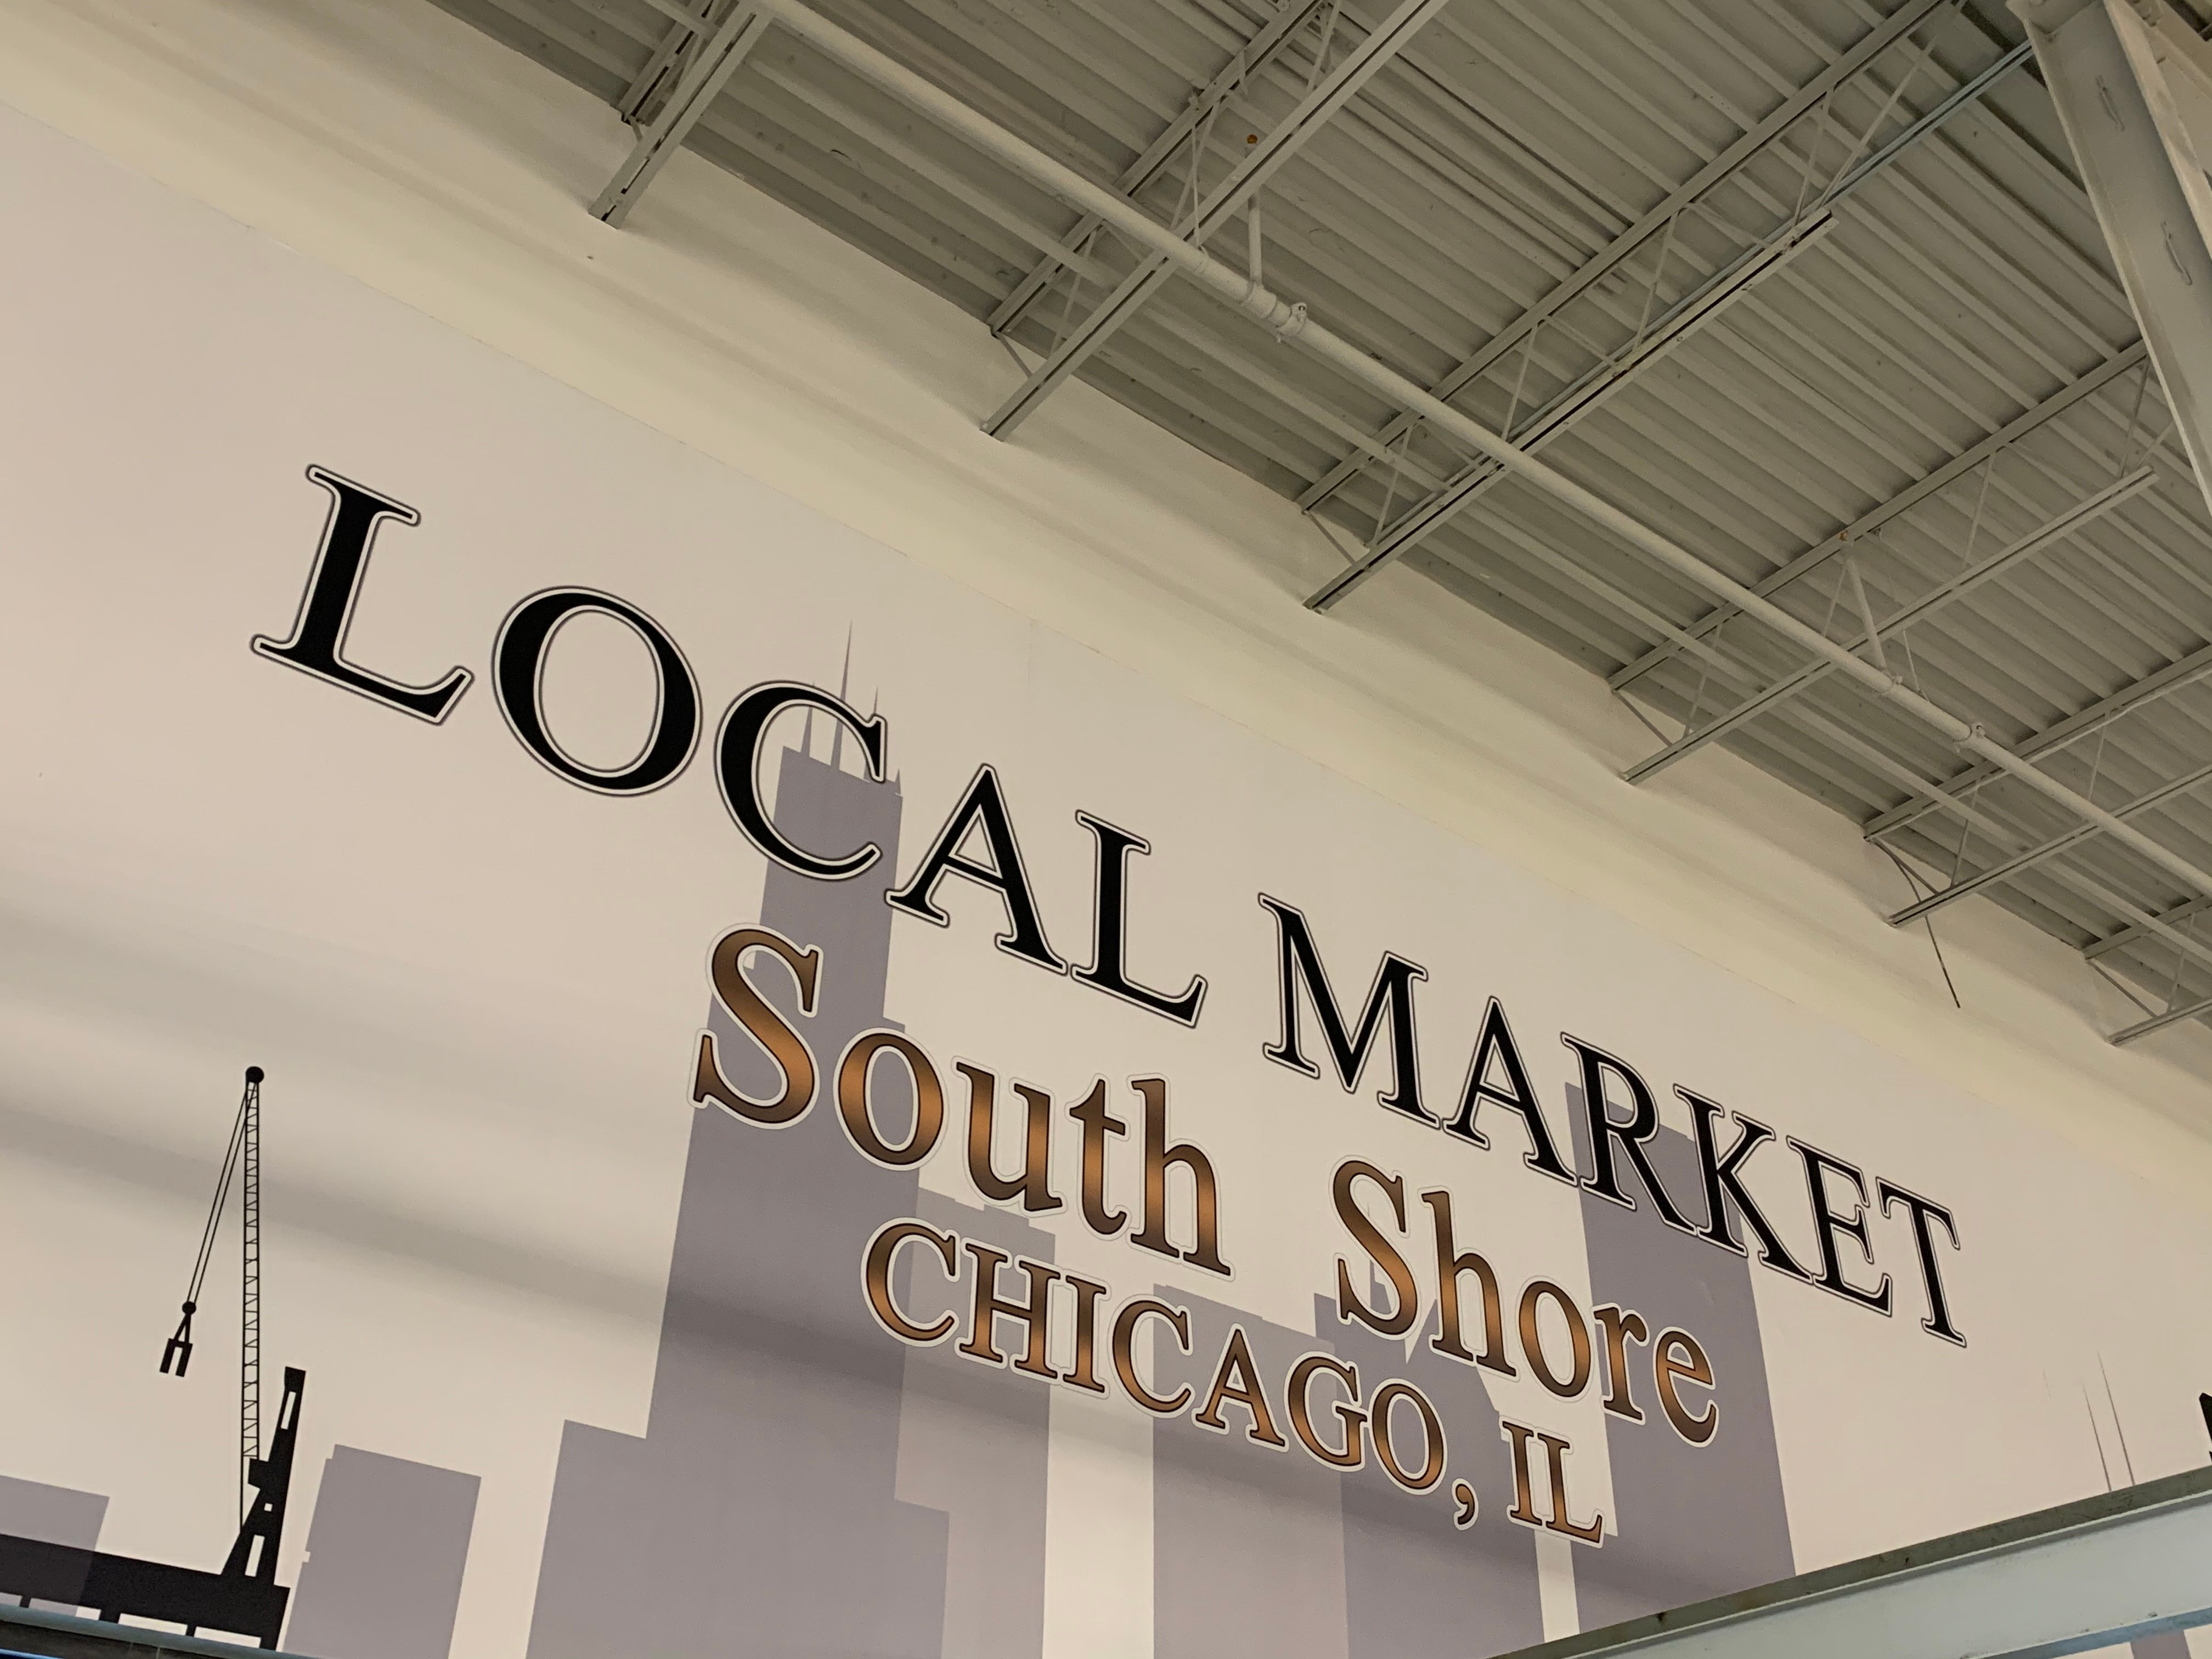 Collaboration is critical in bringing much needed grocery store to South Shore, Chicago